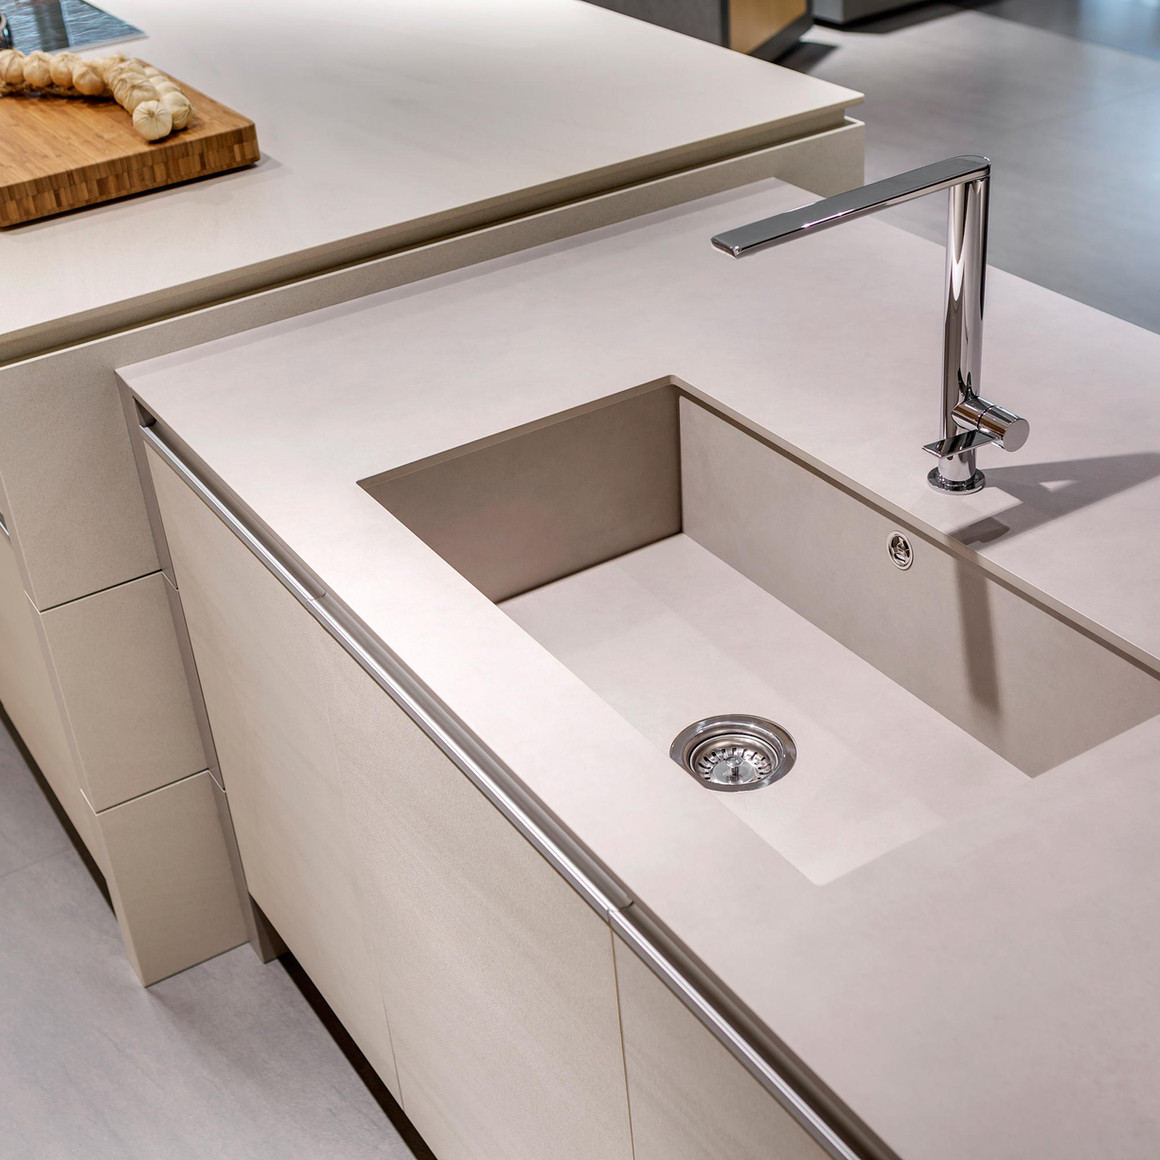 Top in Neolith con vasca saldata sottotop